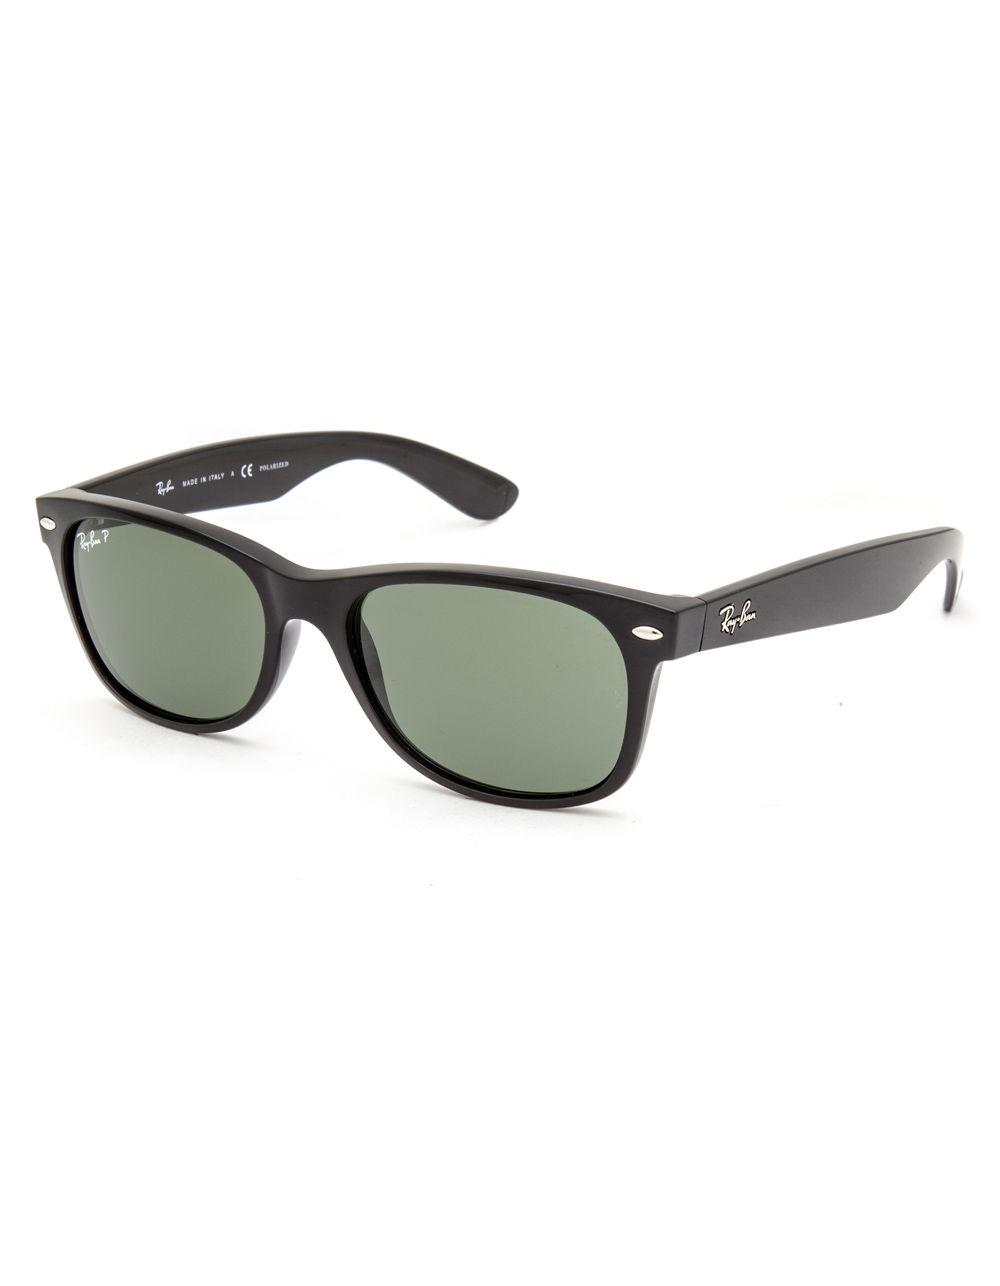 cf0a1162a6f Lyst - Ray-Ban New Wayfarer Polarized Sunglasses in Black for Men